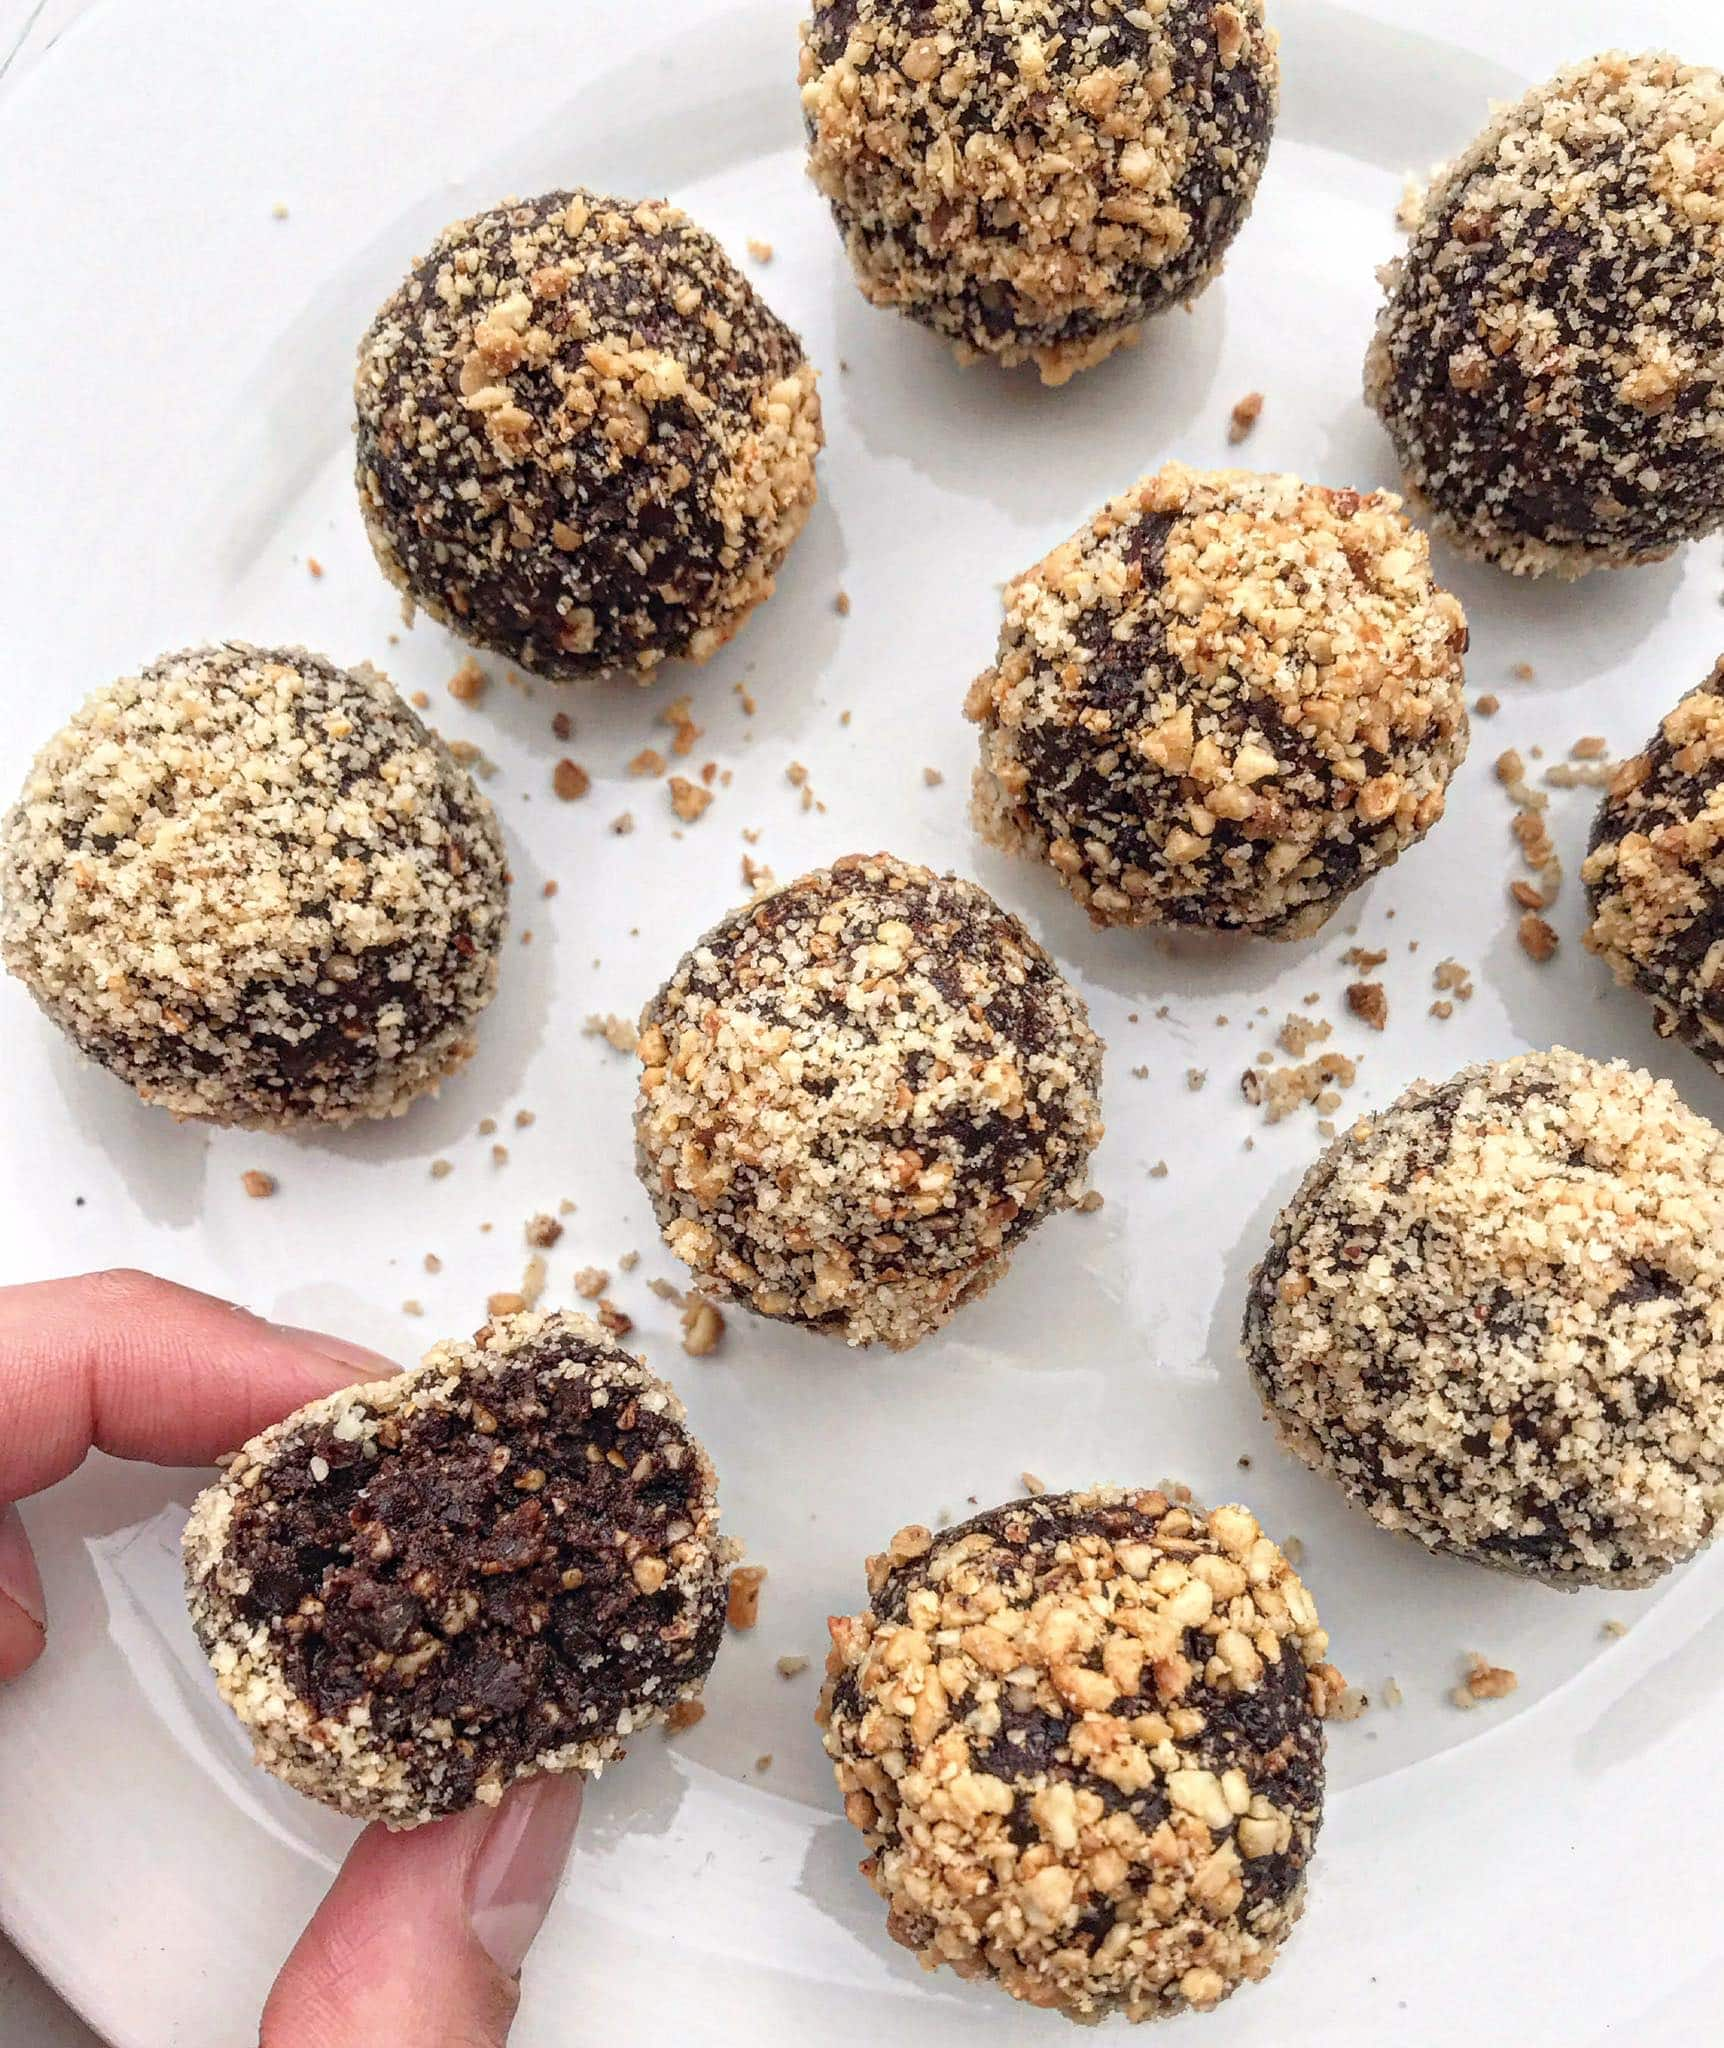 A picture of chocolate hazelnut bliss balls on a white plate.